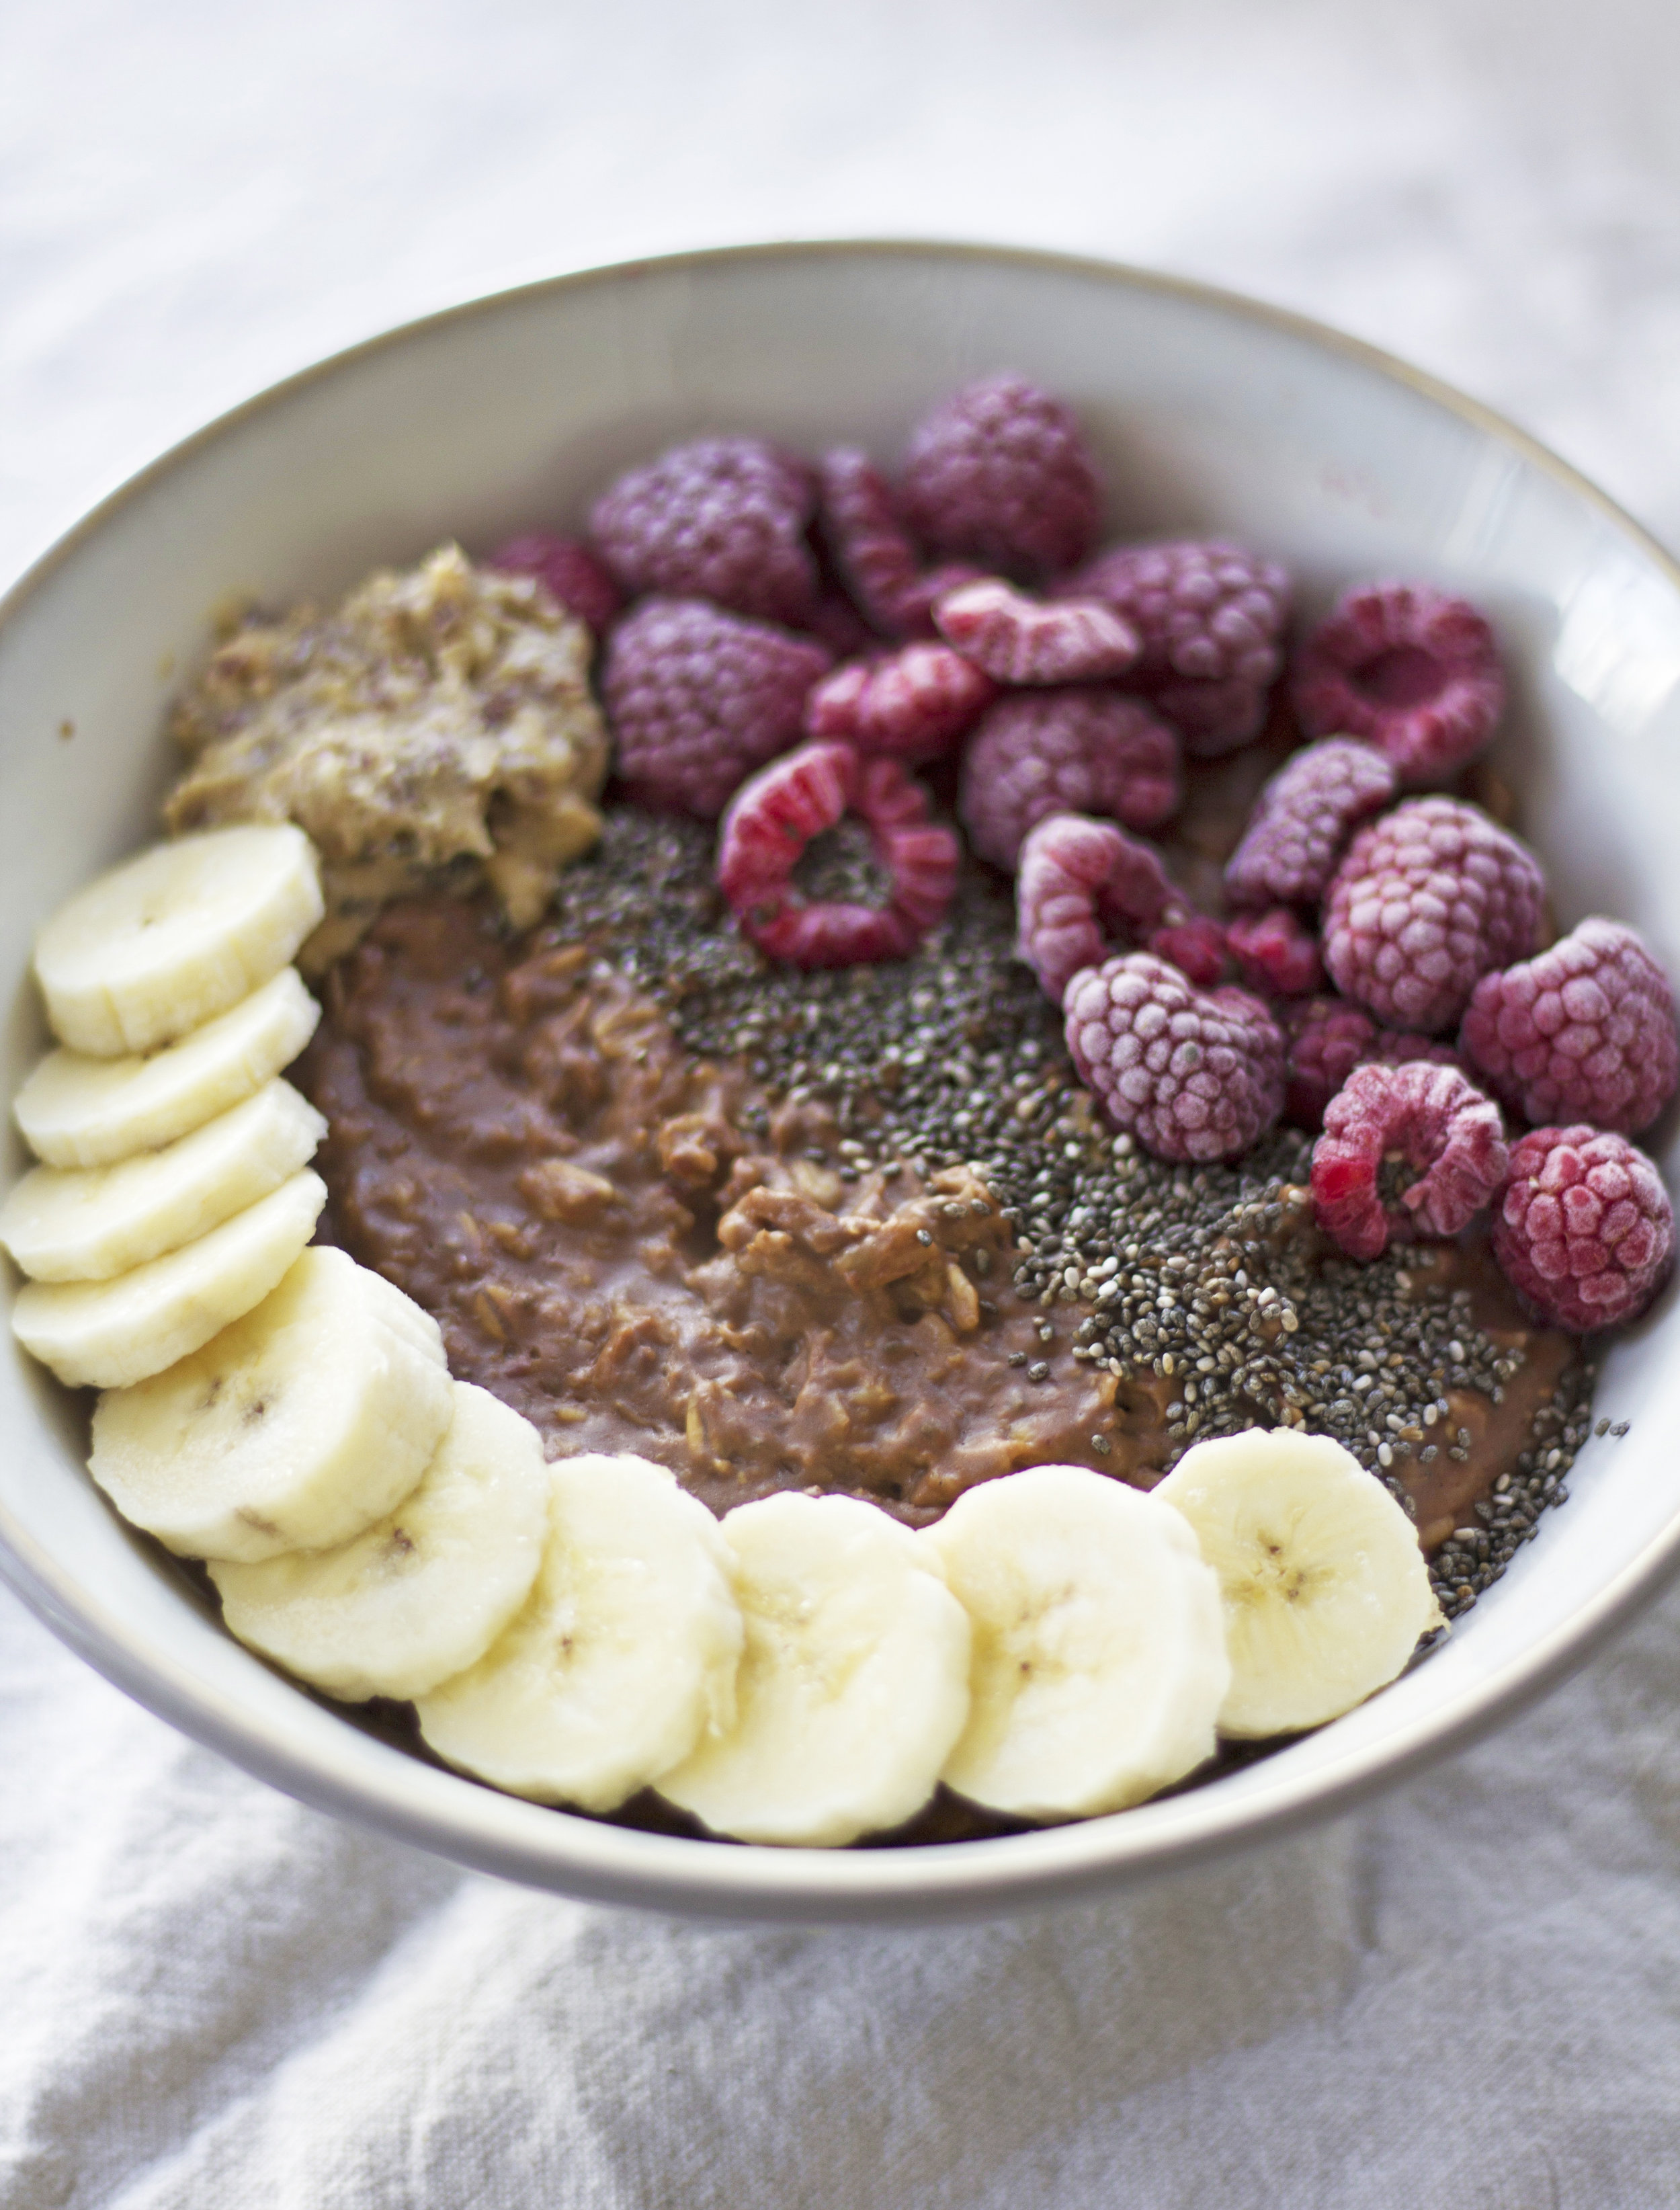 Chocolate, peanut butter and fruit filled oatmeal - prep time10 mins  total time30 mins  serves 2